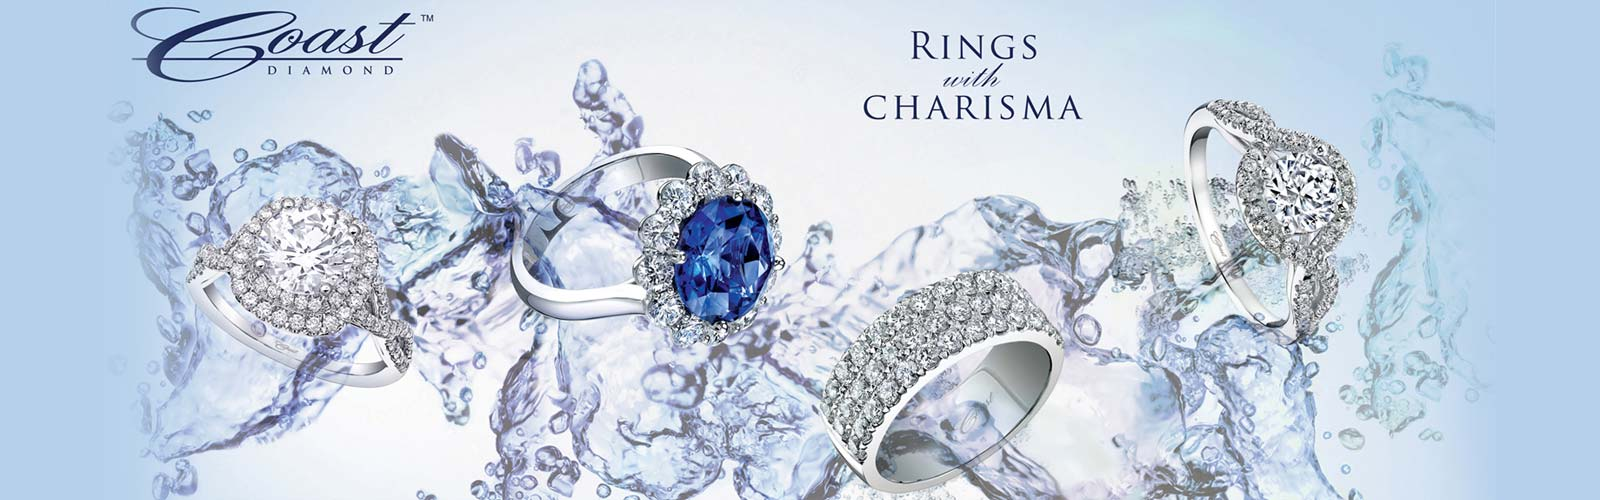 Coast Rings with Charisma